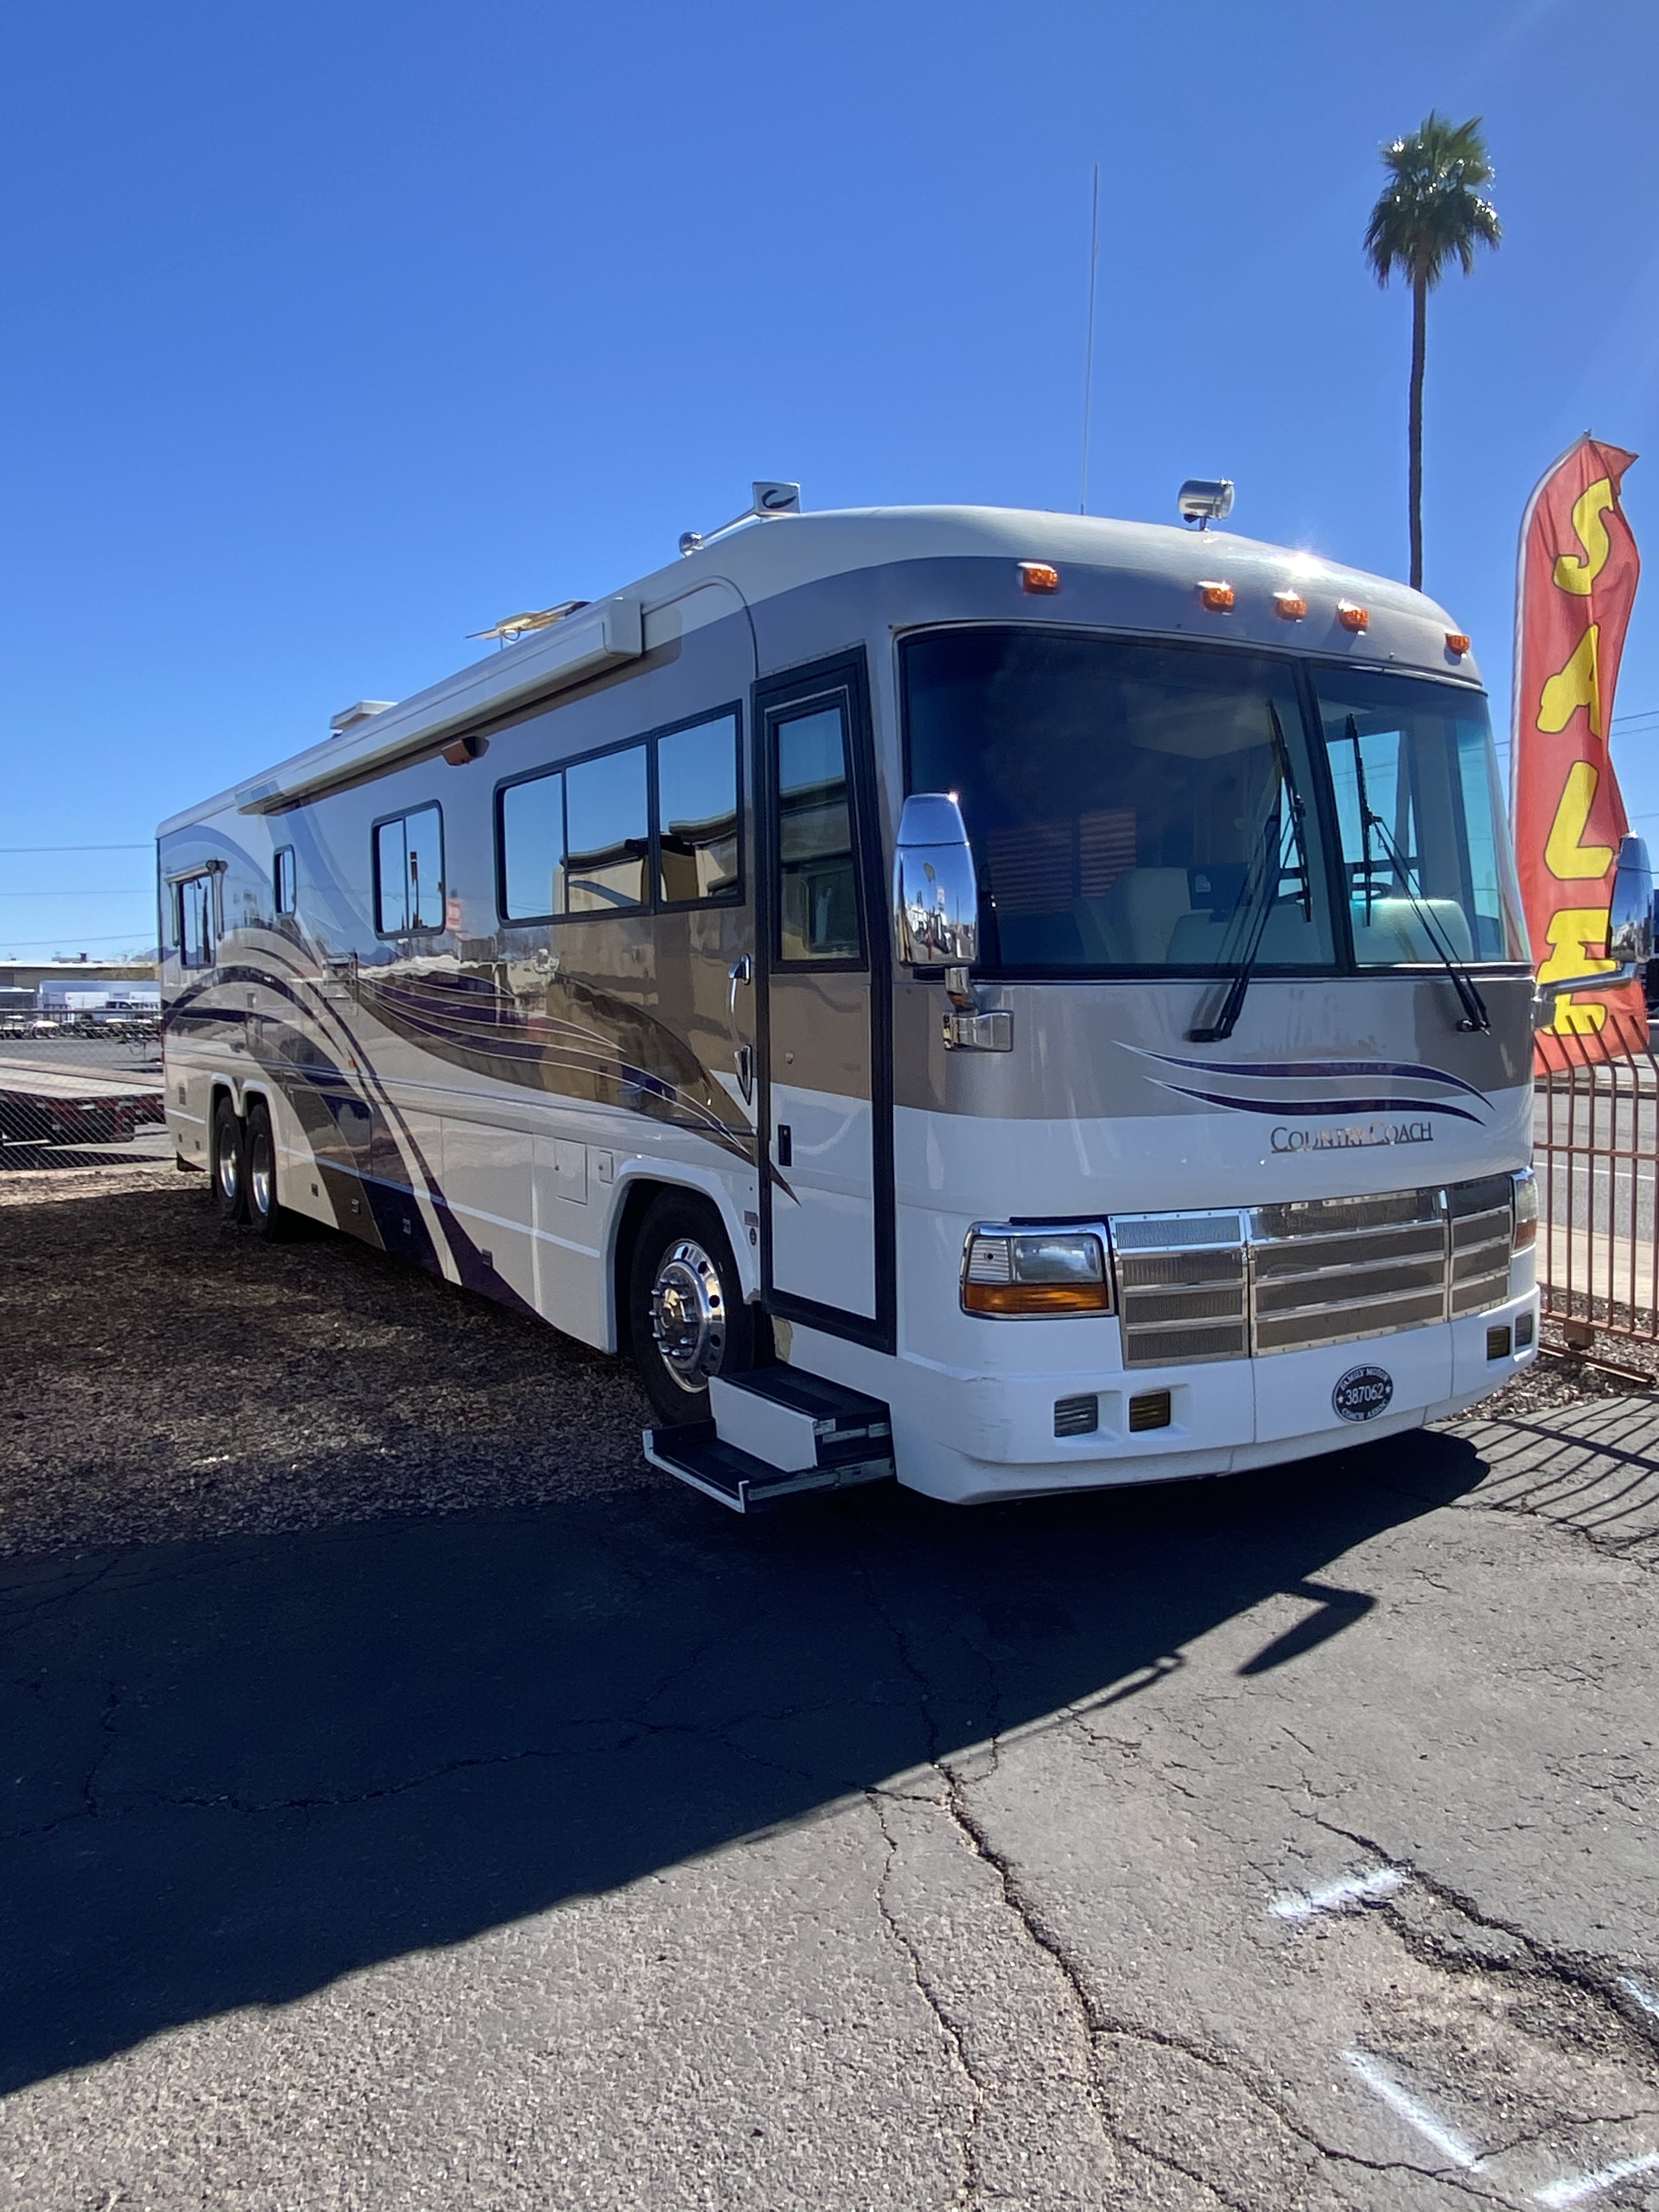 Used, 2001, Country Coach, Affinity 42' Double Slide, RV - Class A